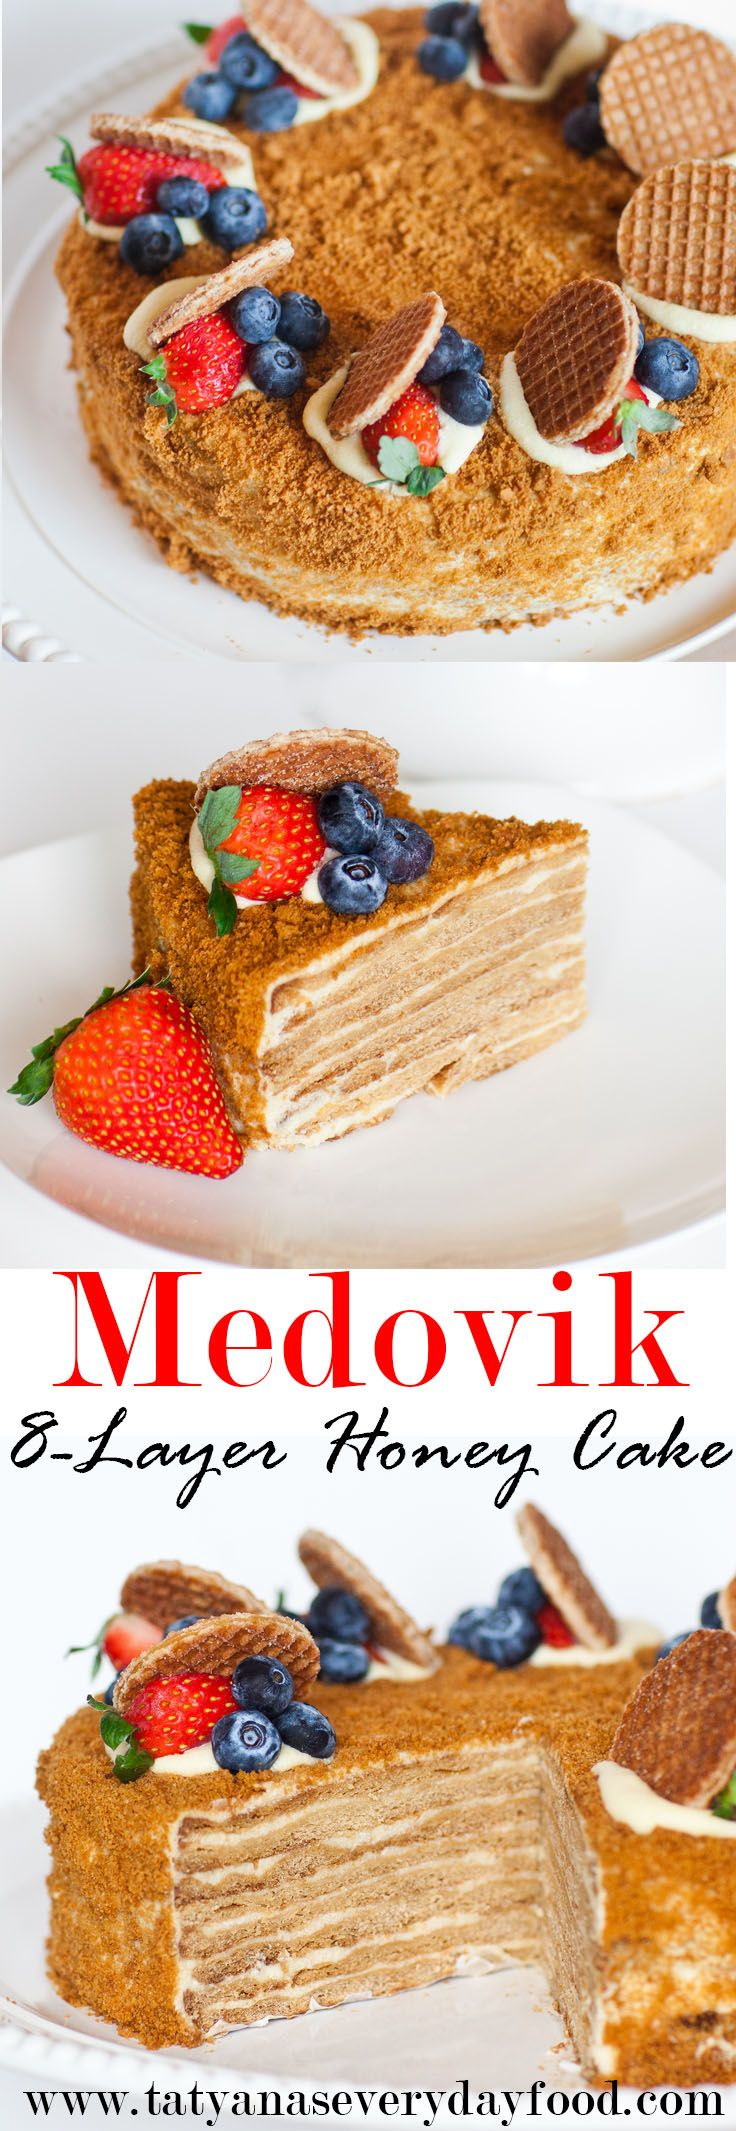 """The famous """"Medovik"""" cake:8 wafer-thin honey cake layers filled with a creamy custard creme! This delicious cake is often enjoyed with tea after dinner in homes across Ukraine and Russia! The custard creme recipe I'm sharing with you was passed down to me from my mother, who has been making this cake and creme for […] #honeycake"""